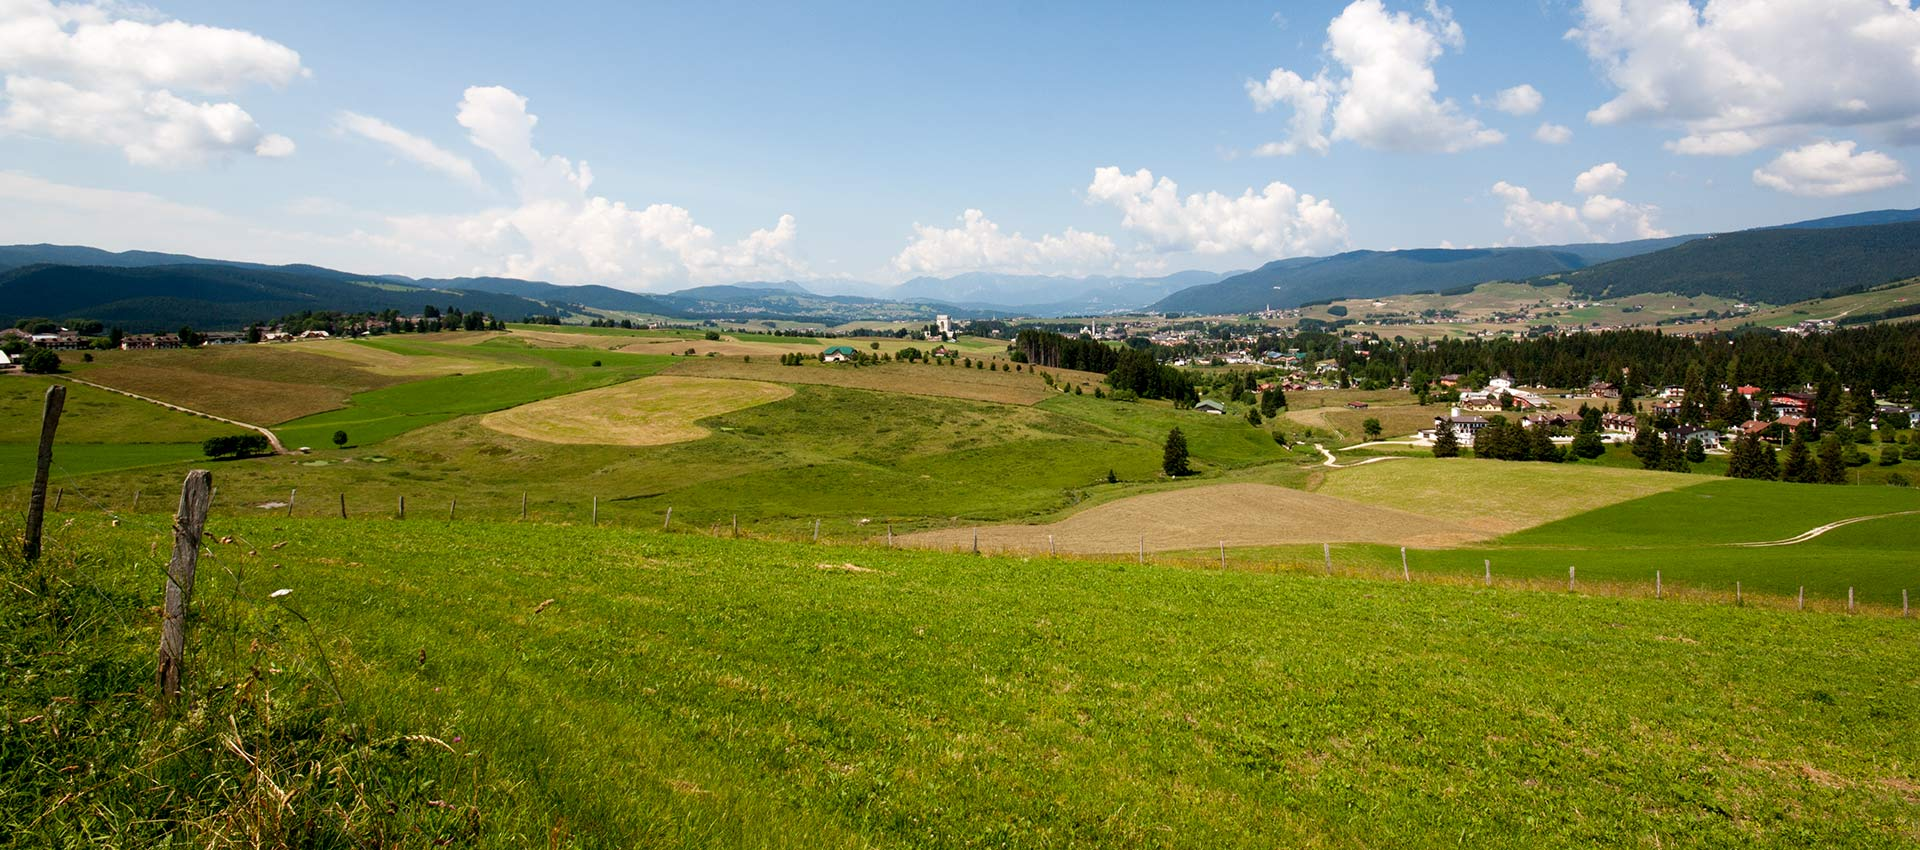 The plateau in summer